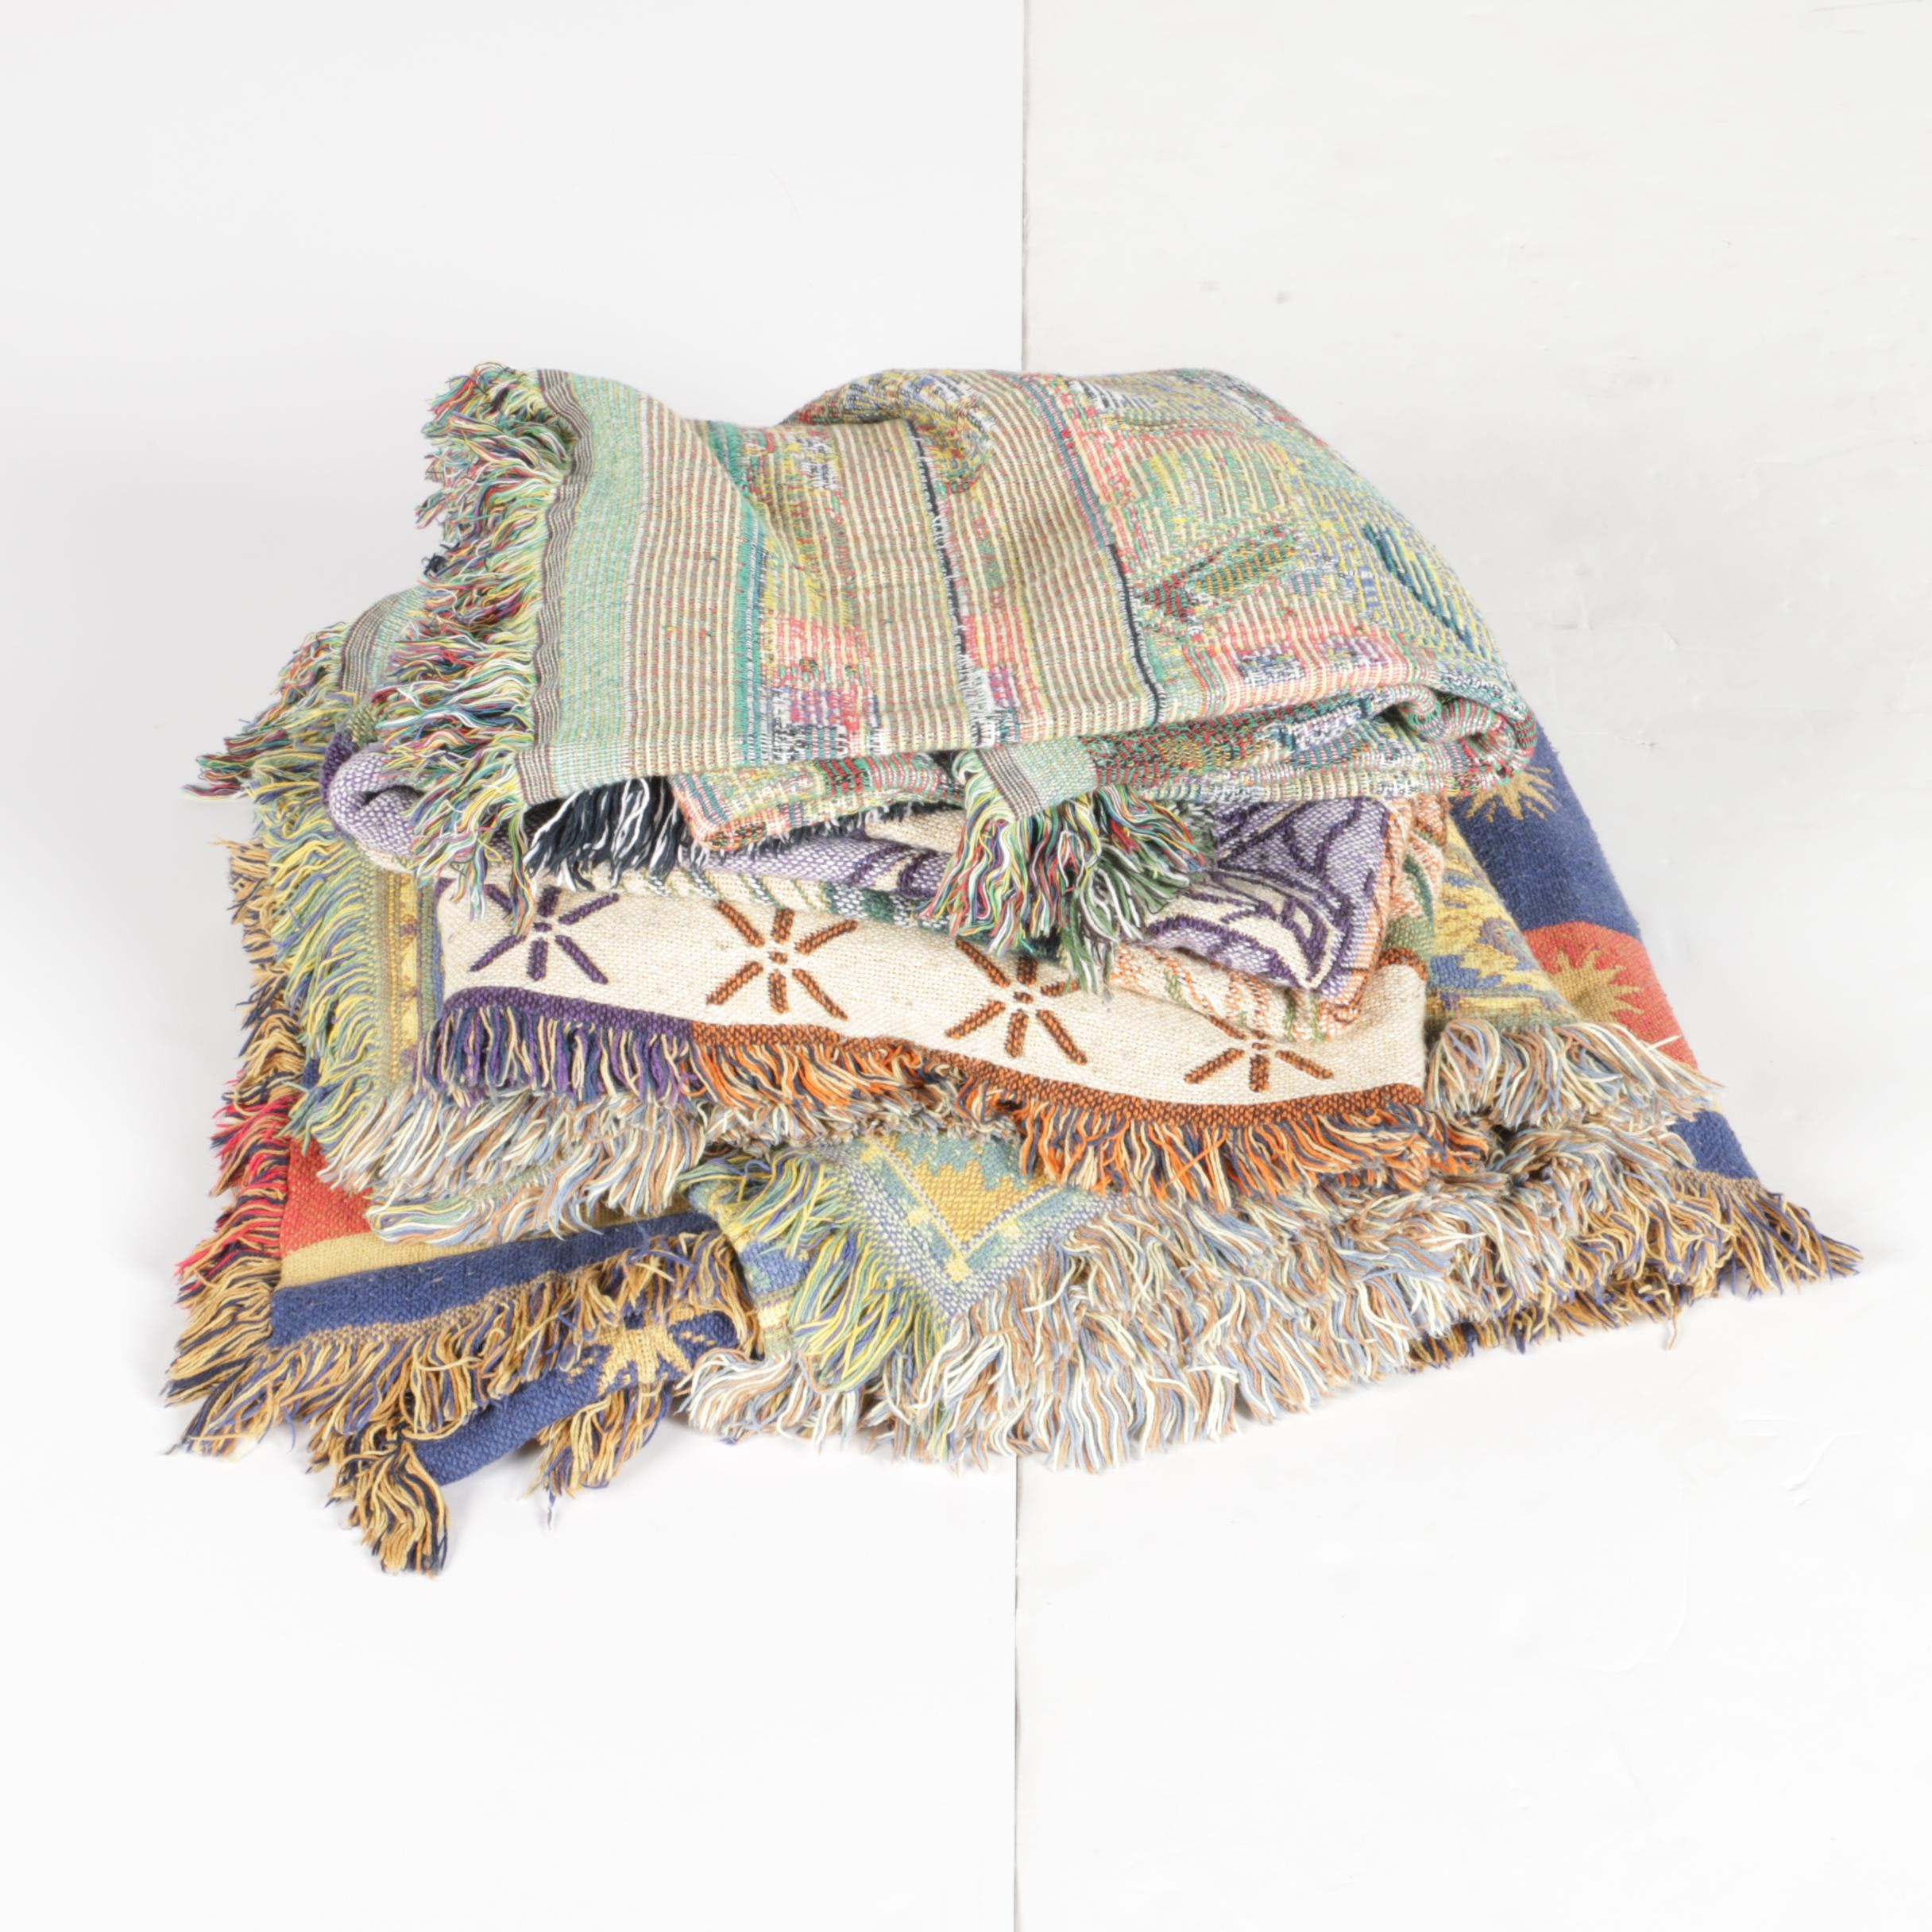 Collection of Woven Blankets